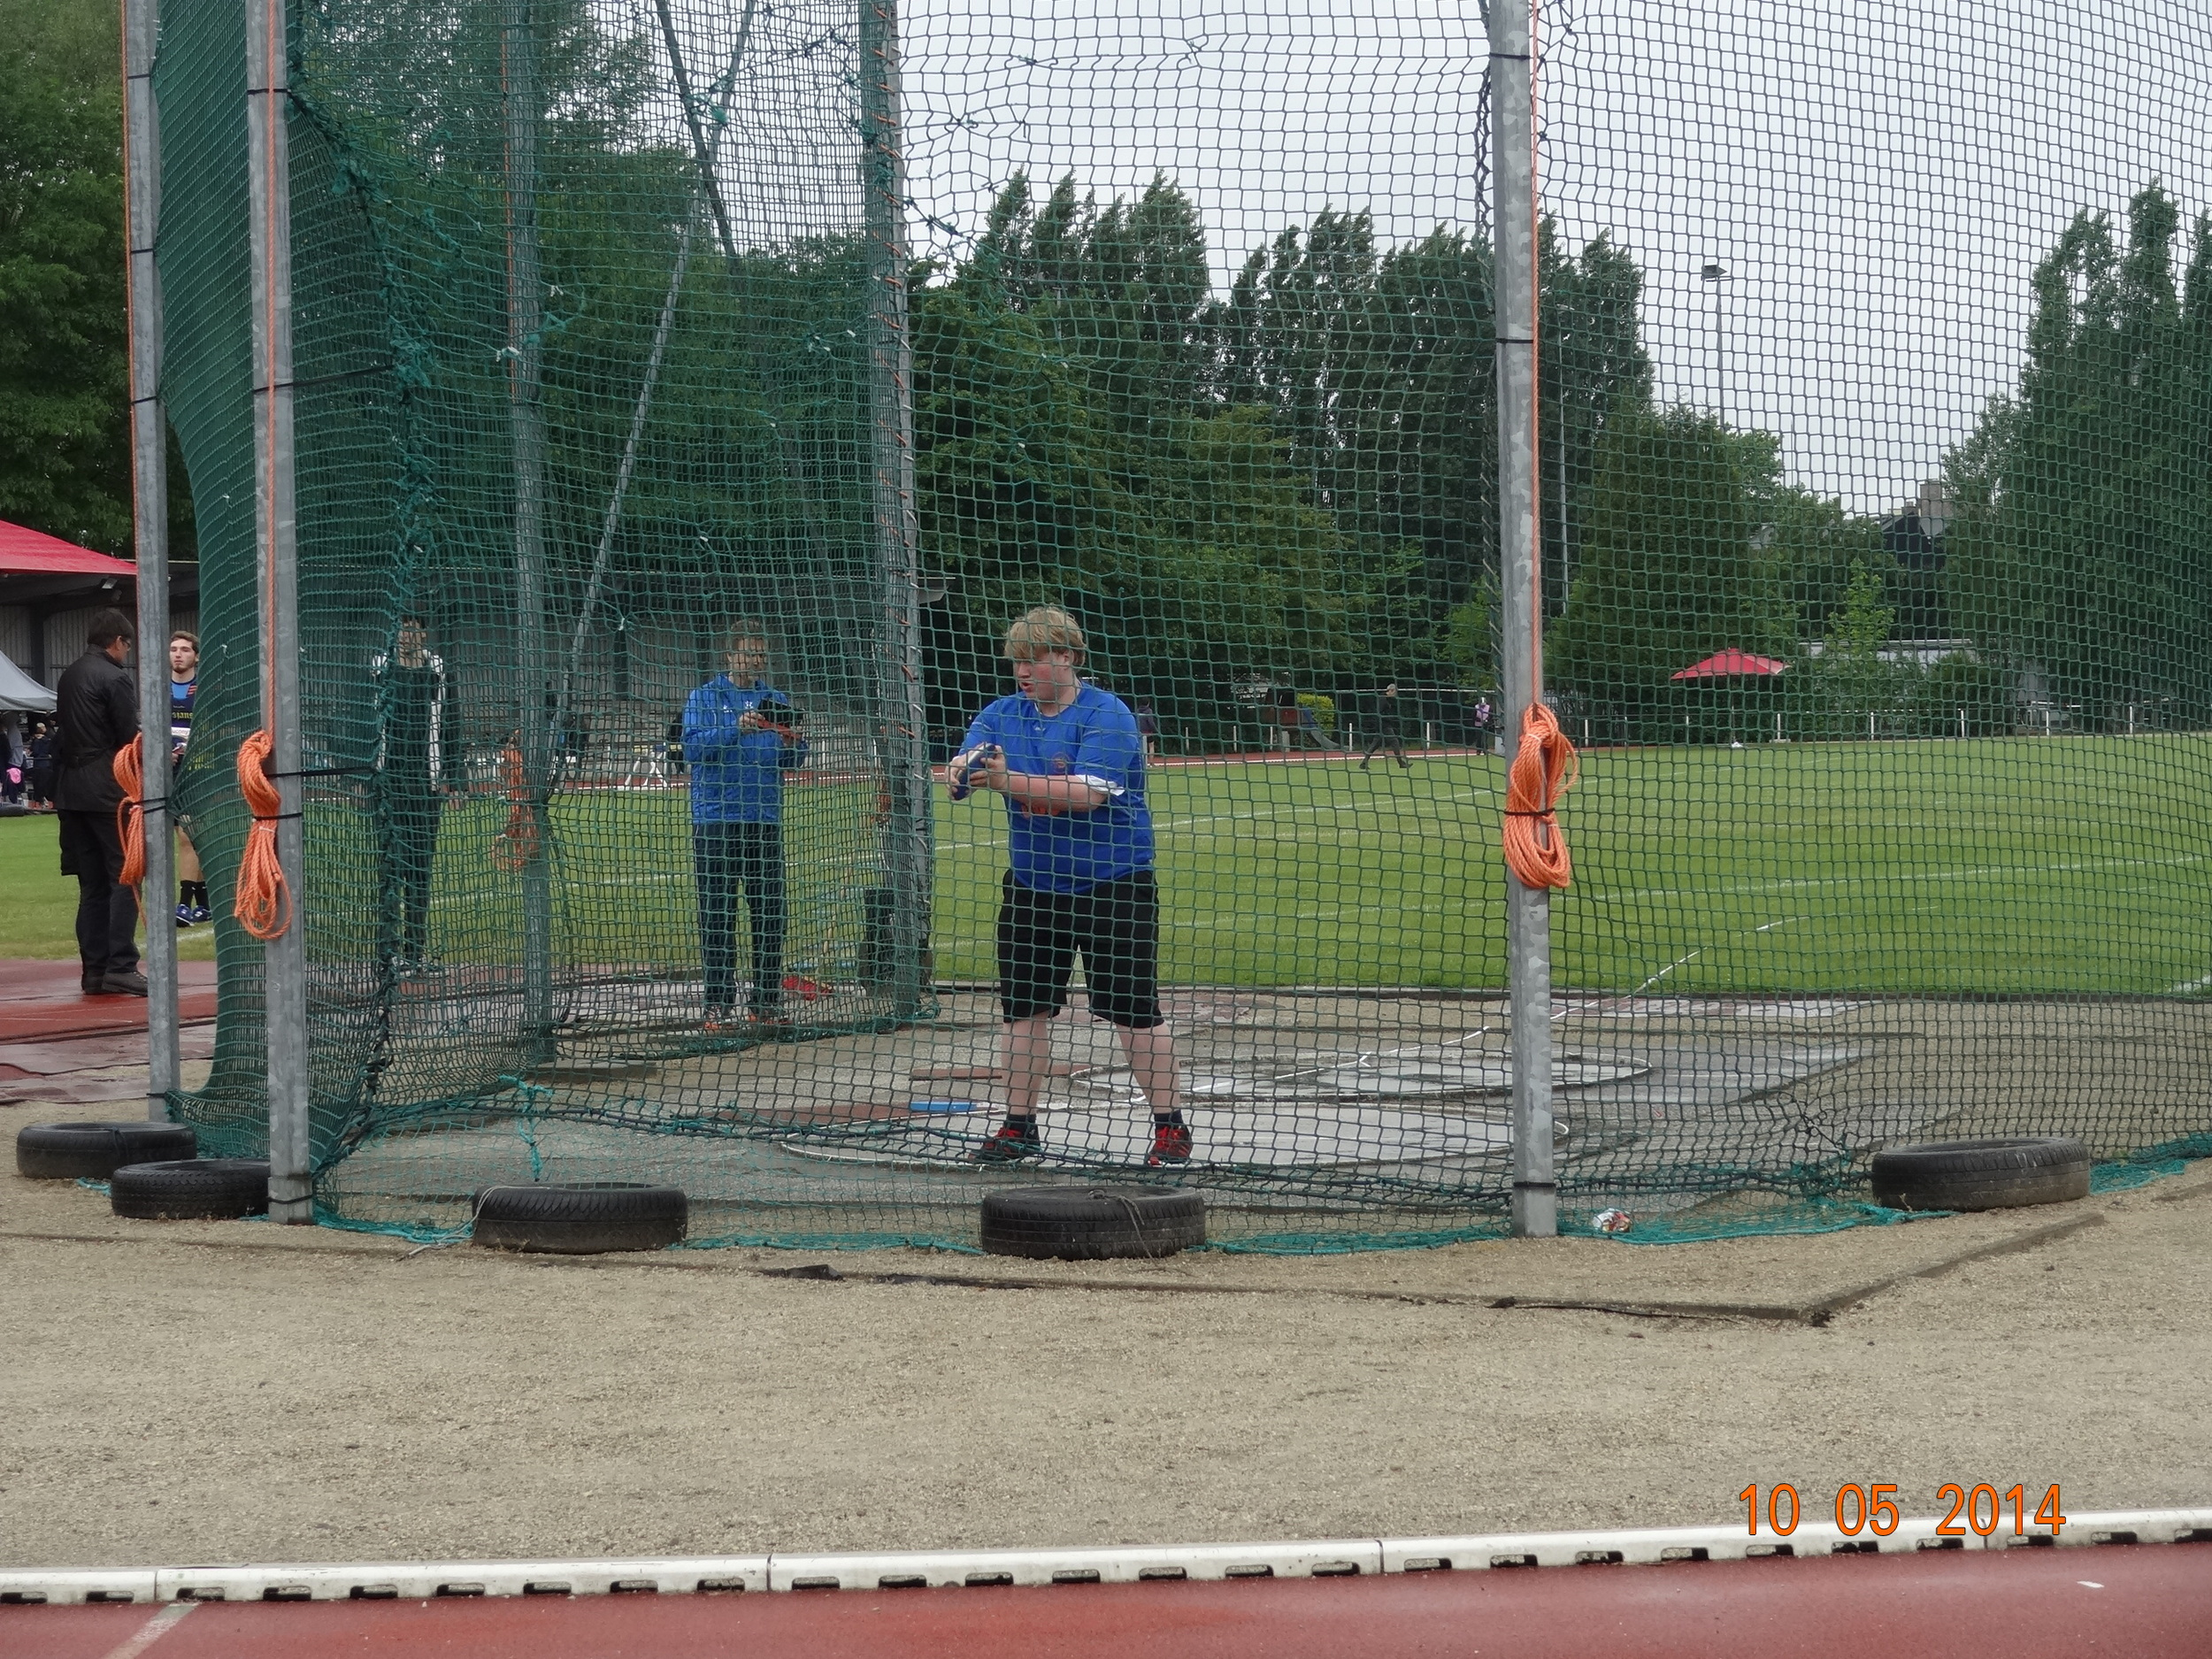 The HS discus player preparing to throw his school record.  I should note that he is also my son.